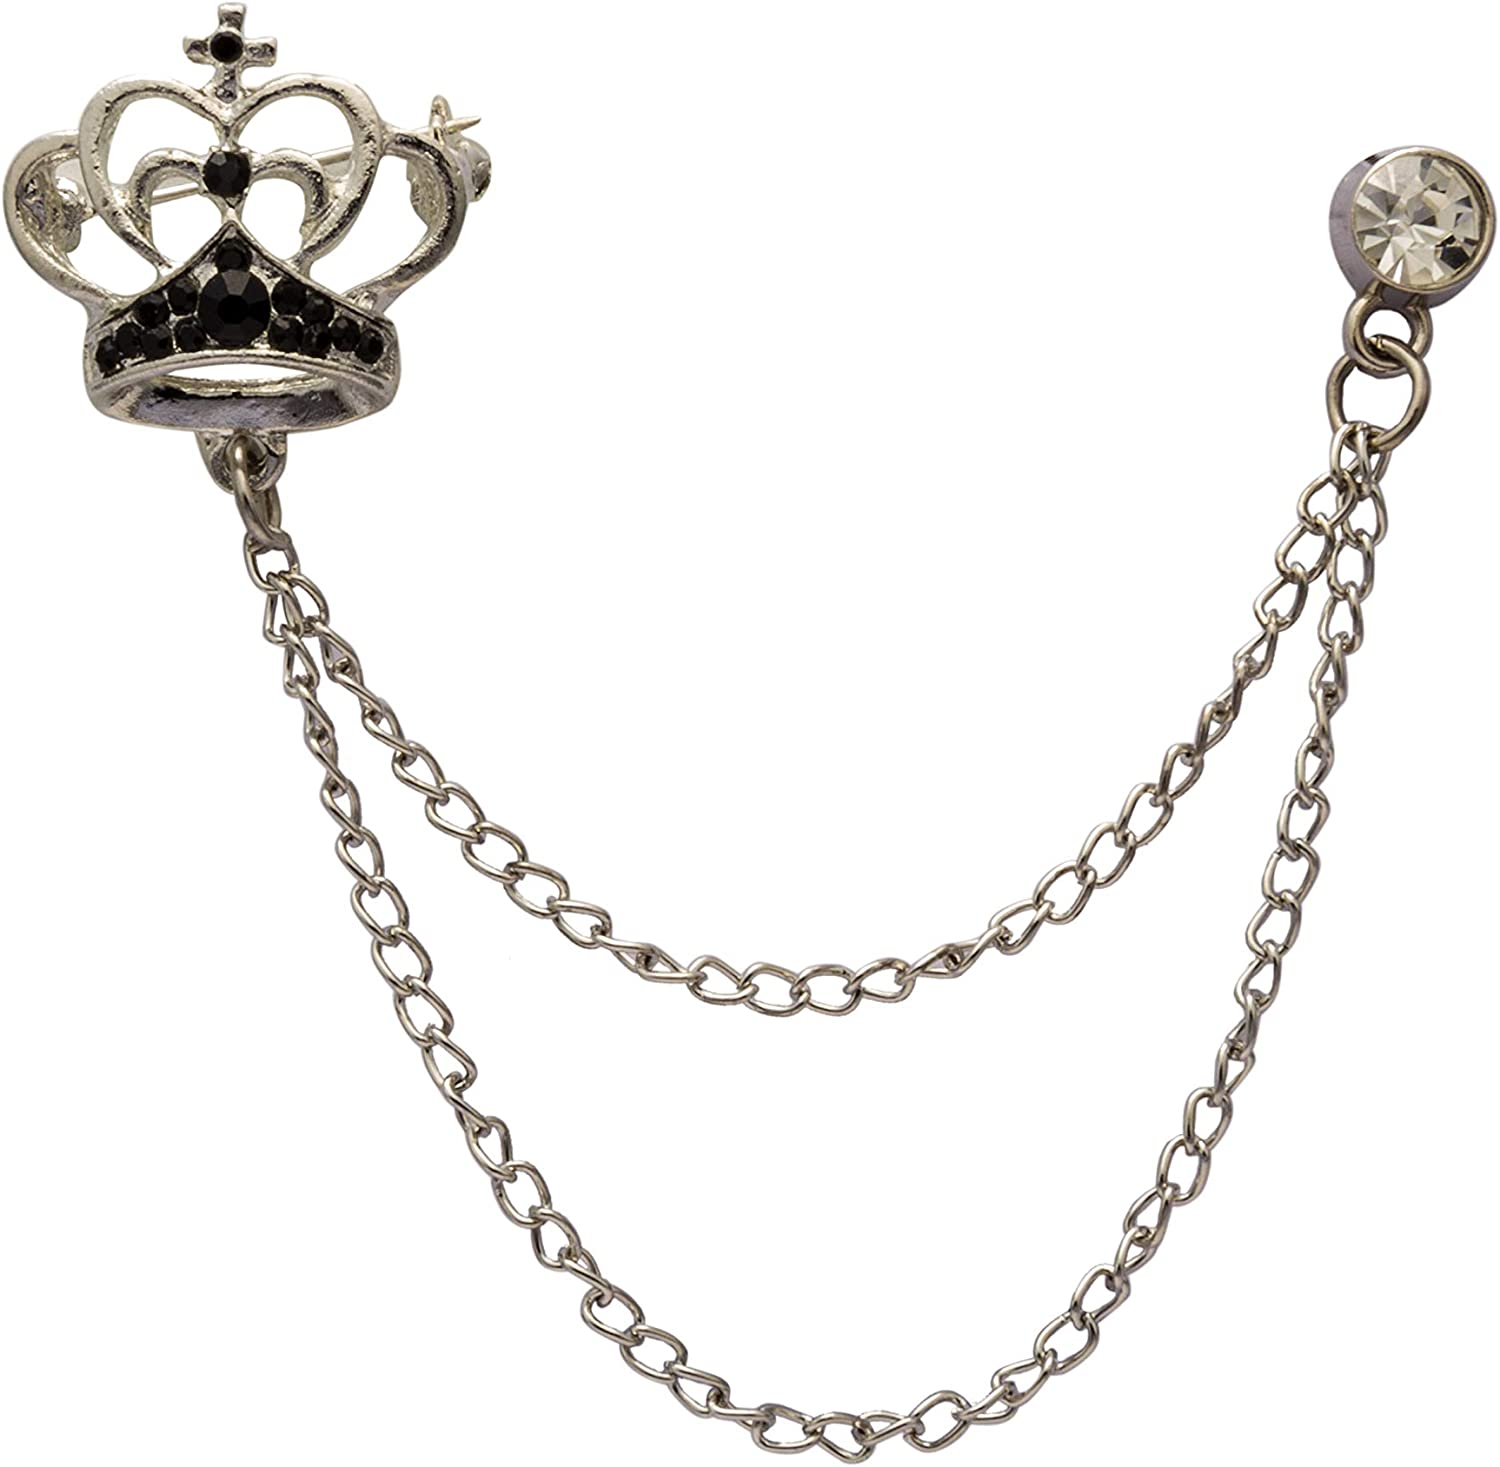 an KINGPiiN Lapel Pin for Men Elegant Silver Crown with Black Crystal and Hanging Chain Lapel Pin Brooch Suit Stud, Shirt Studs Men's Accessories